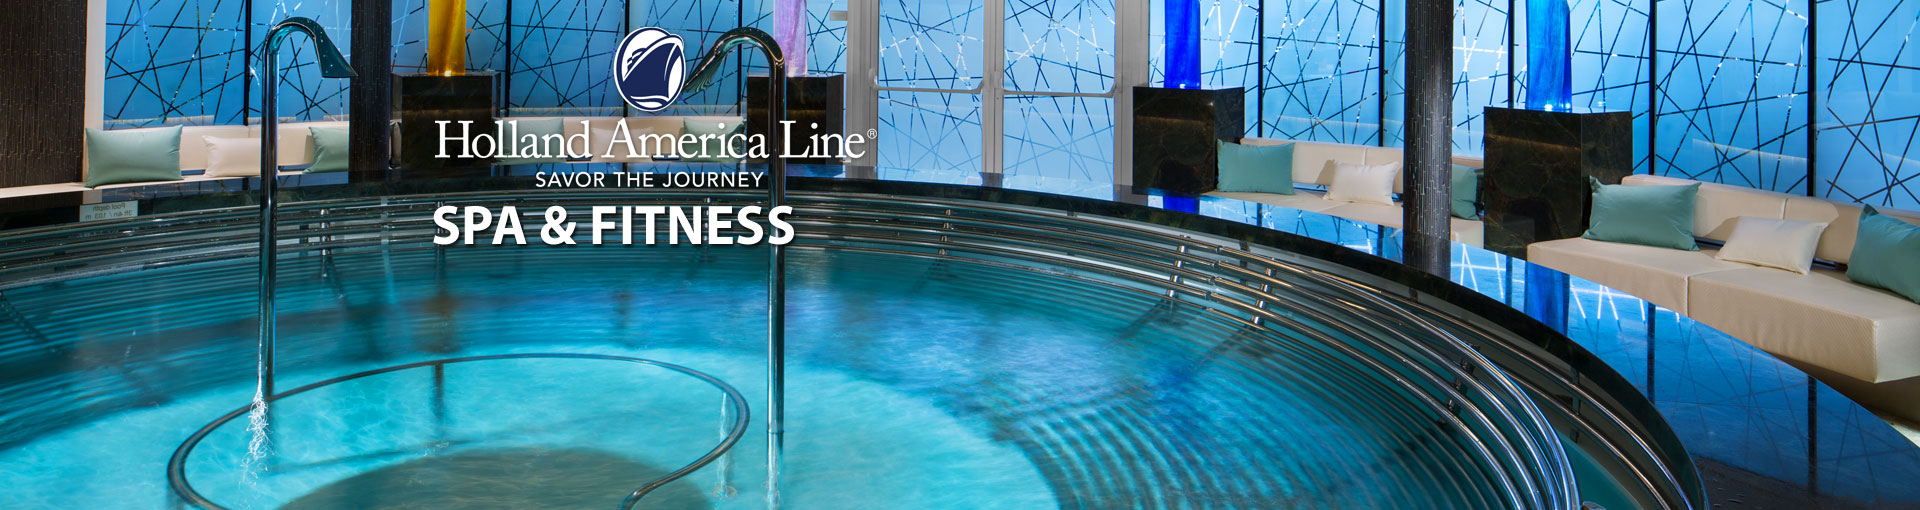 Holland America Line Spa & Fitness